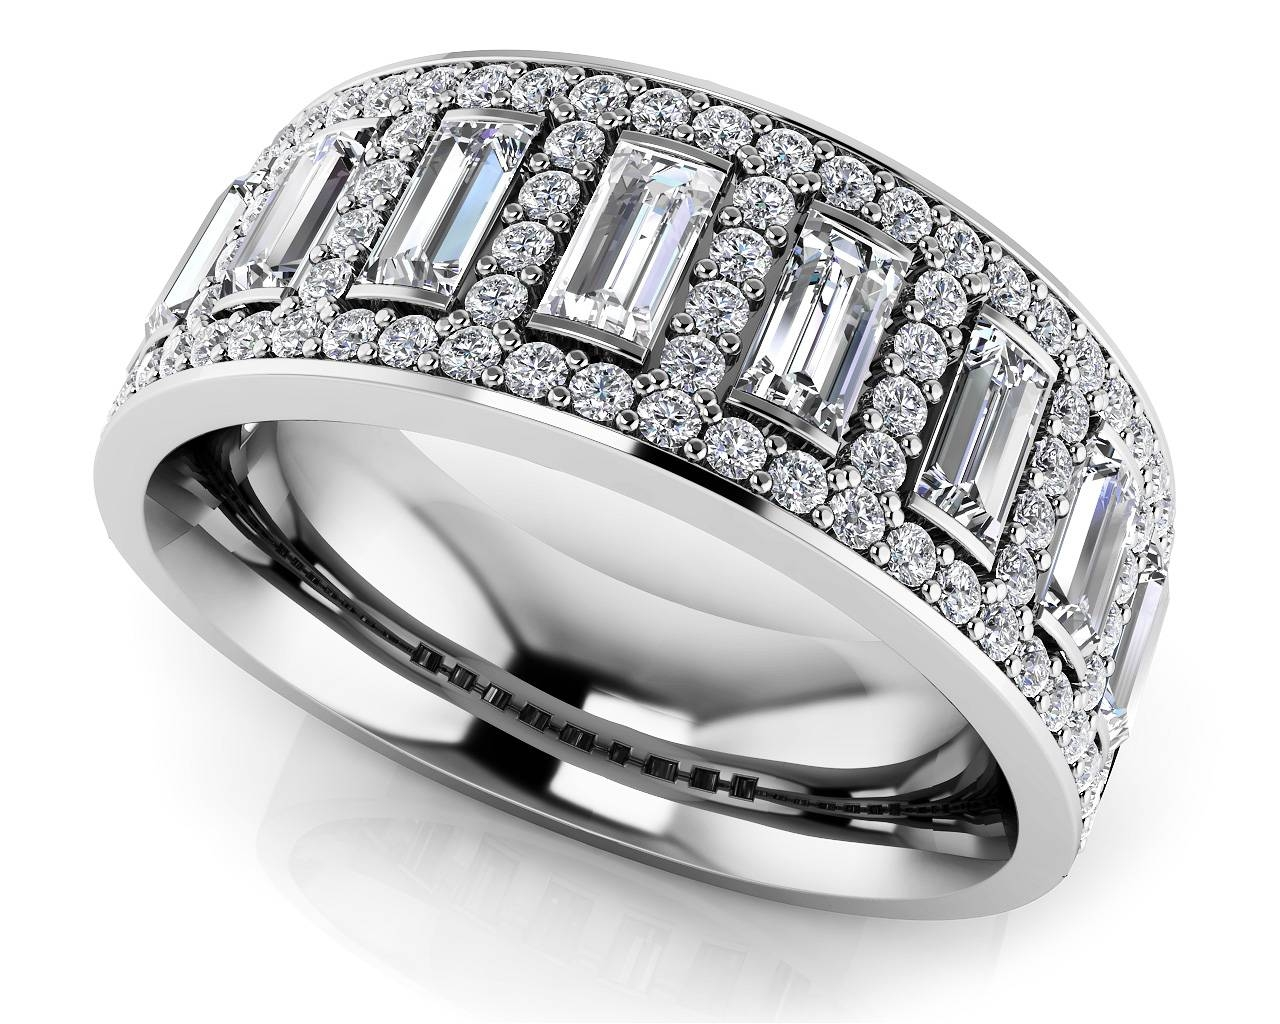 Design Your Own Diamond Anniversary Ring & Eternity Ring Throughout Most Up To Date Platinum Anniversary Rings (Gallery 23 of 25)